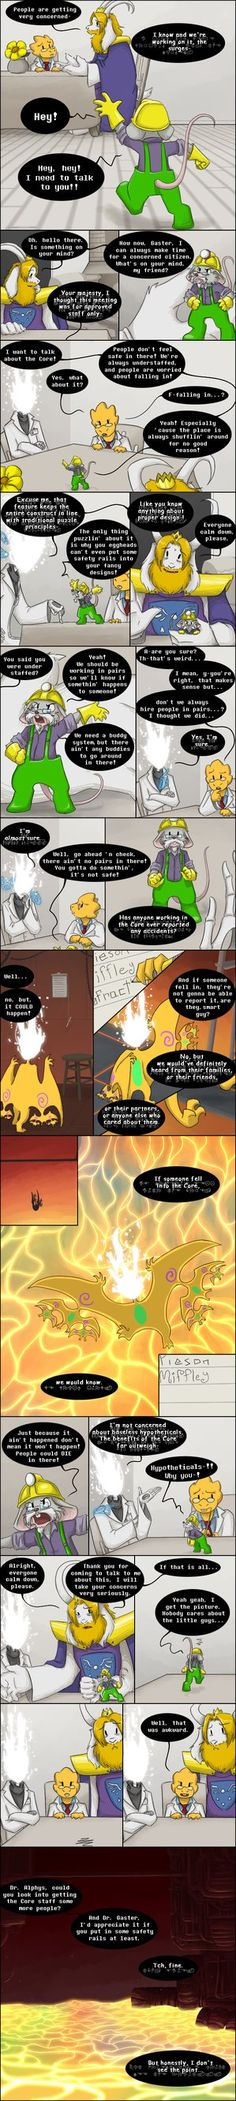 What they call 'foreshadowing' by zarla.deviantart.com on @DeviantArt